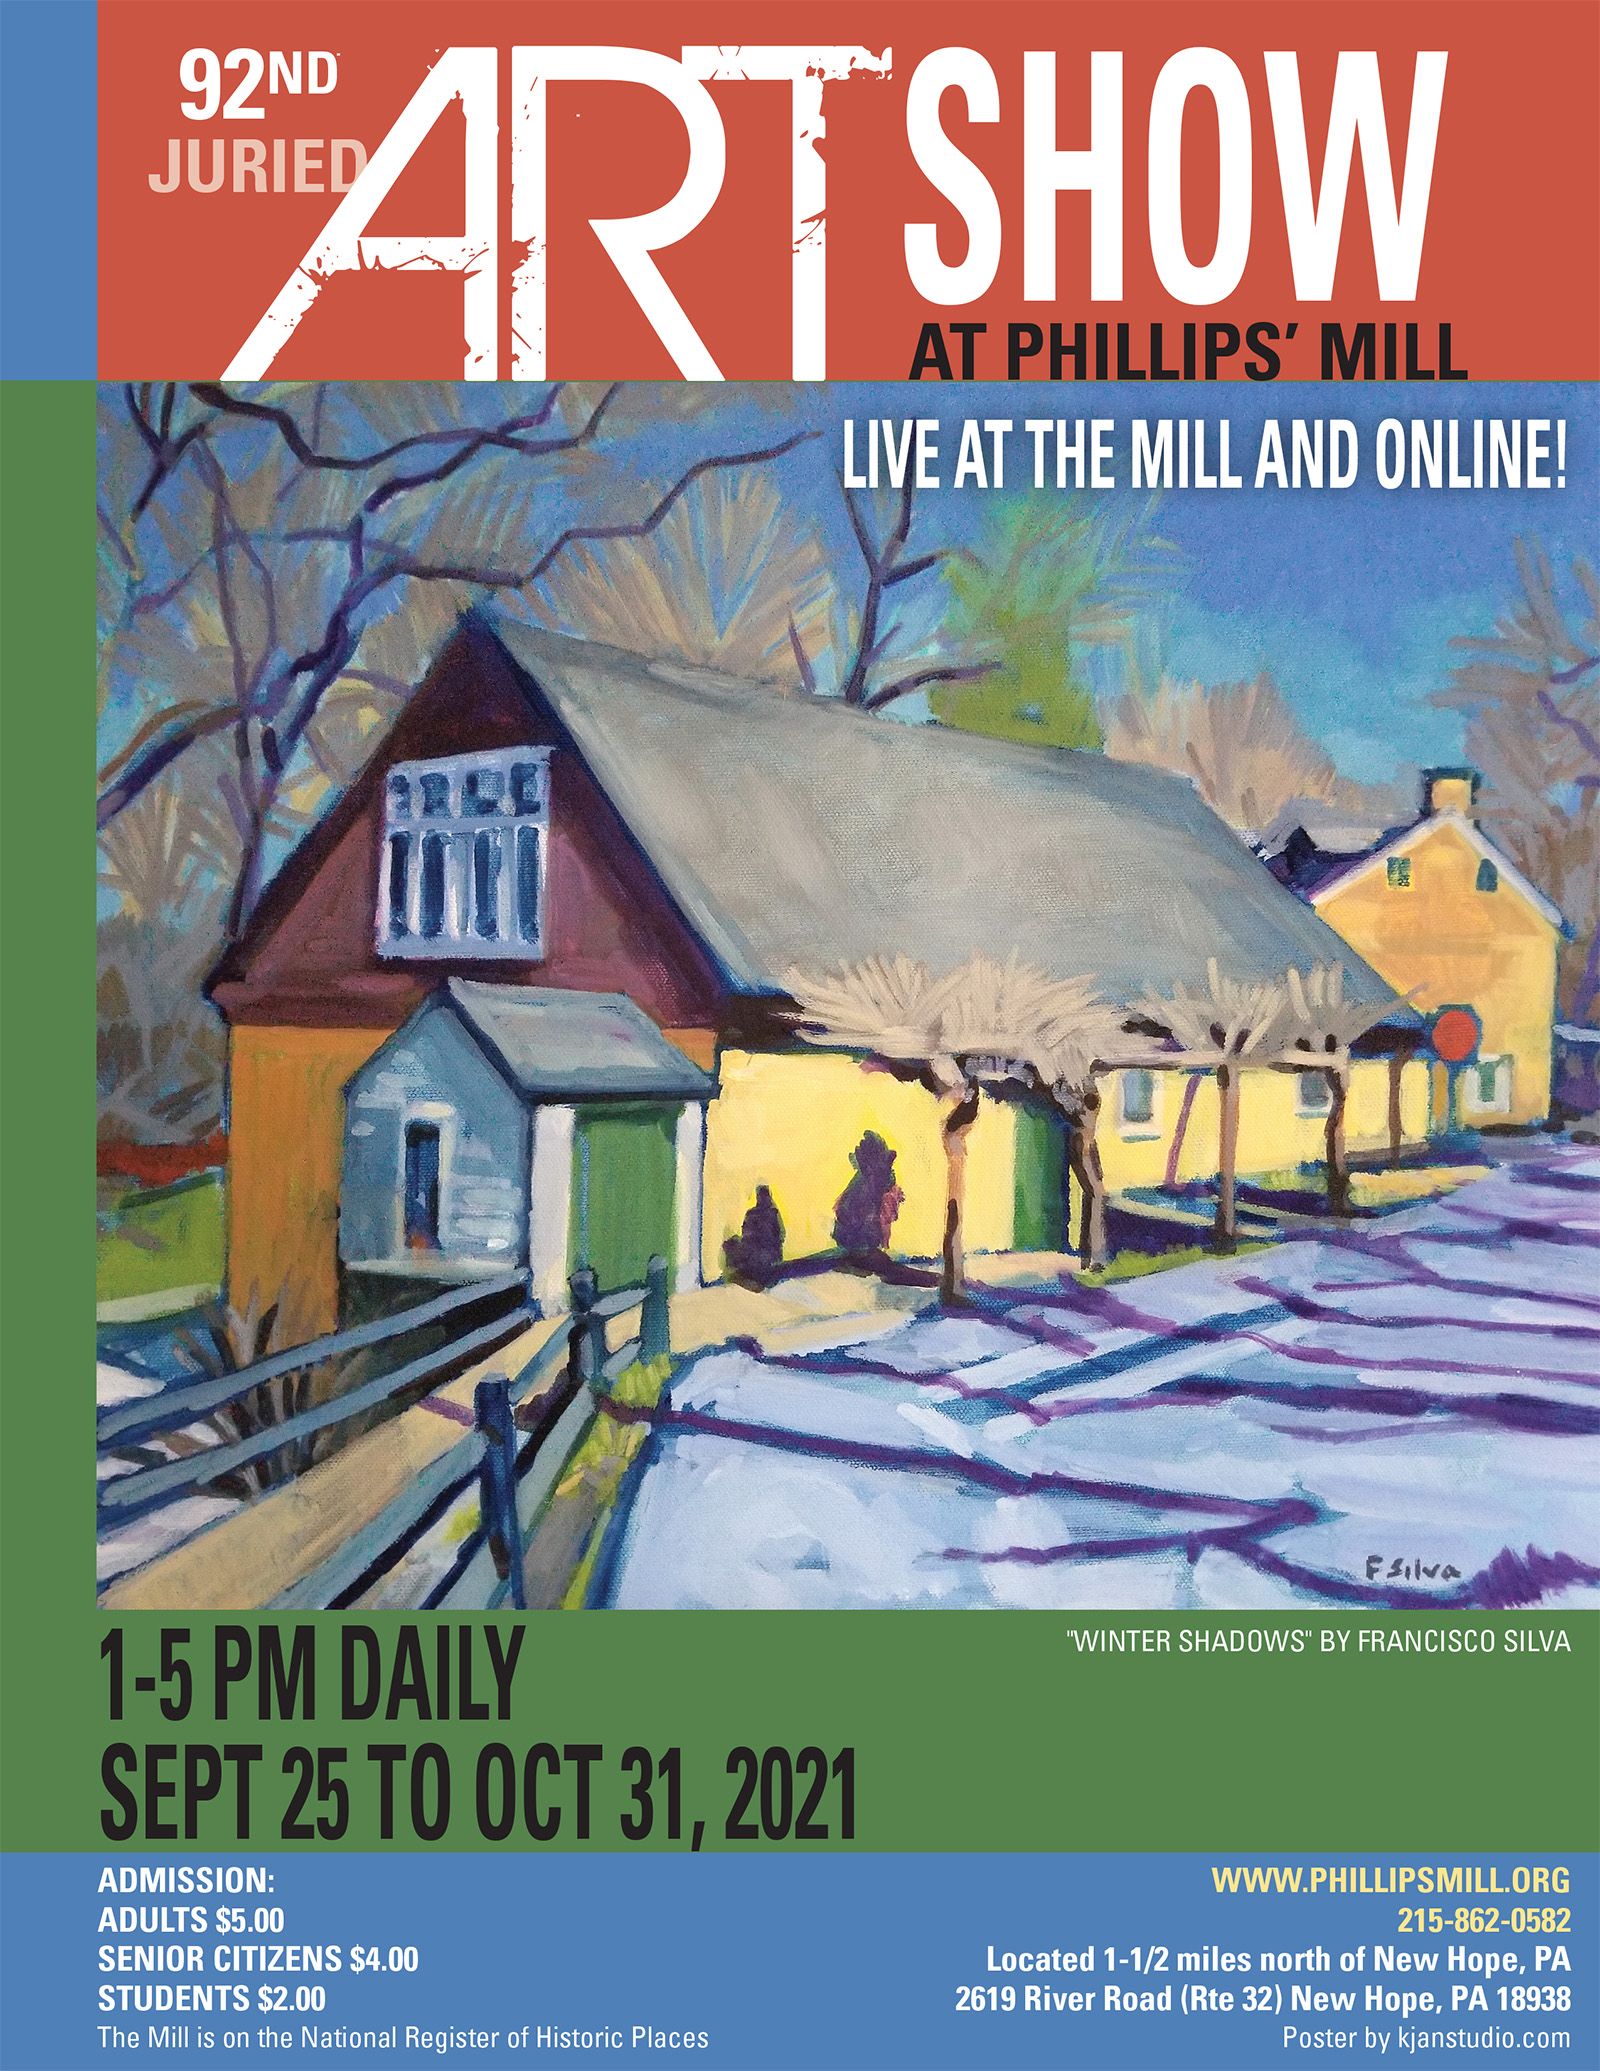 92nd Juried Art Show at Phillip's Mill - Poster with Signature Image by Francisco Silva